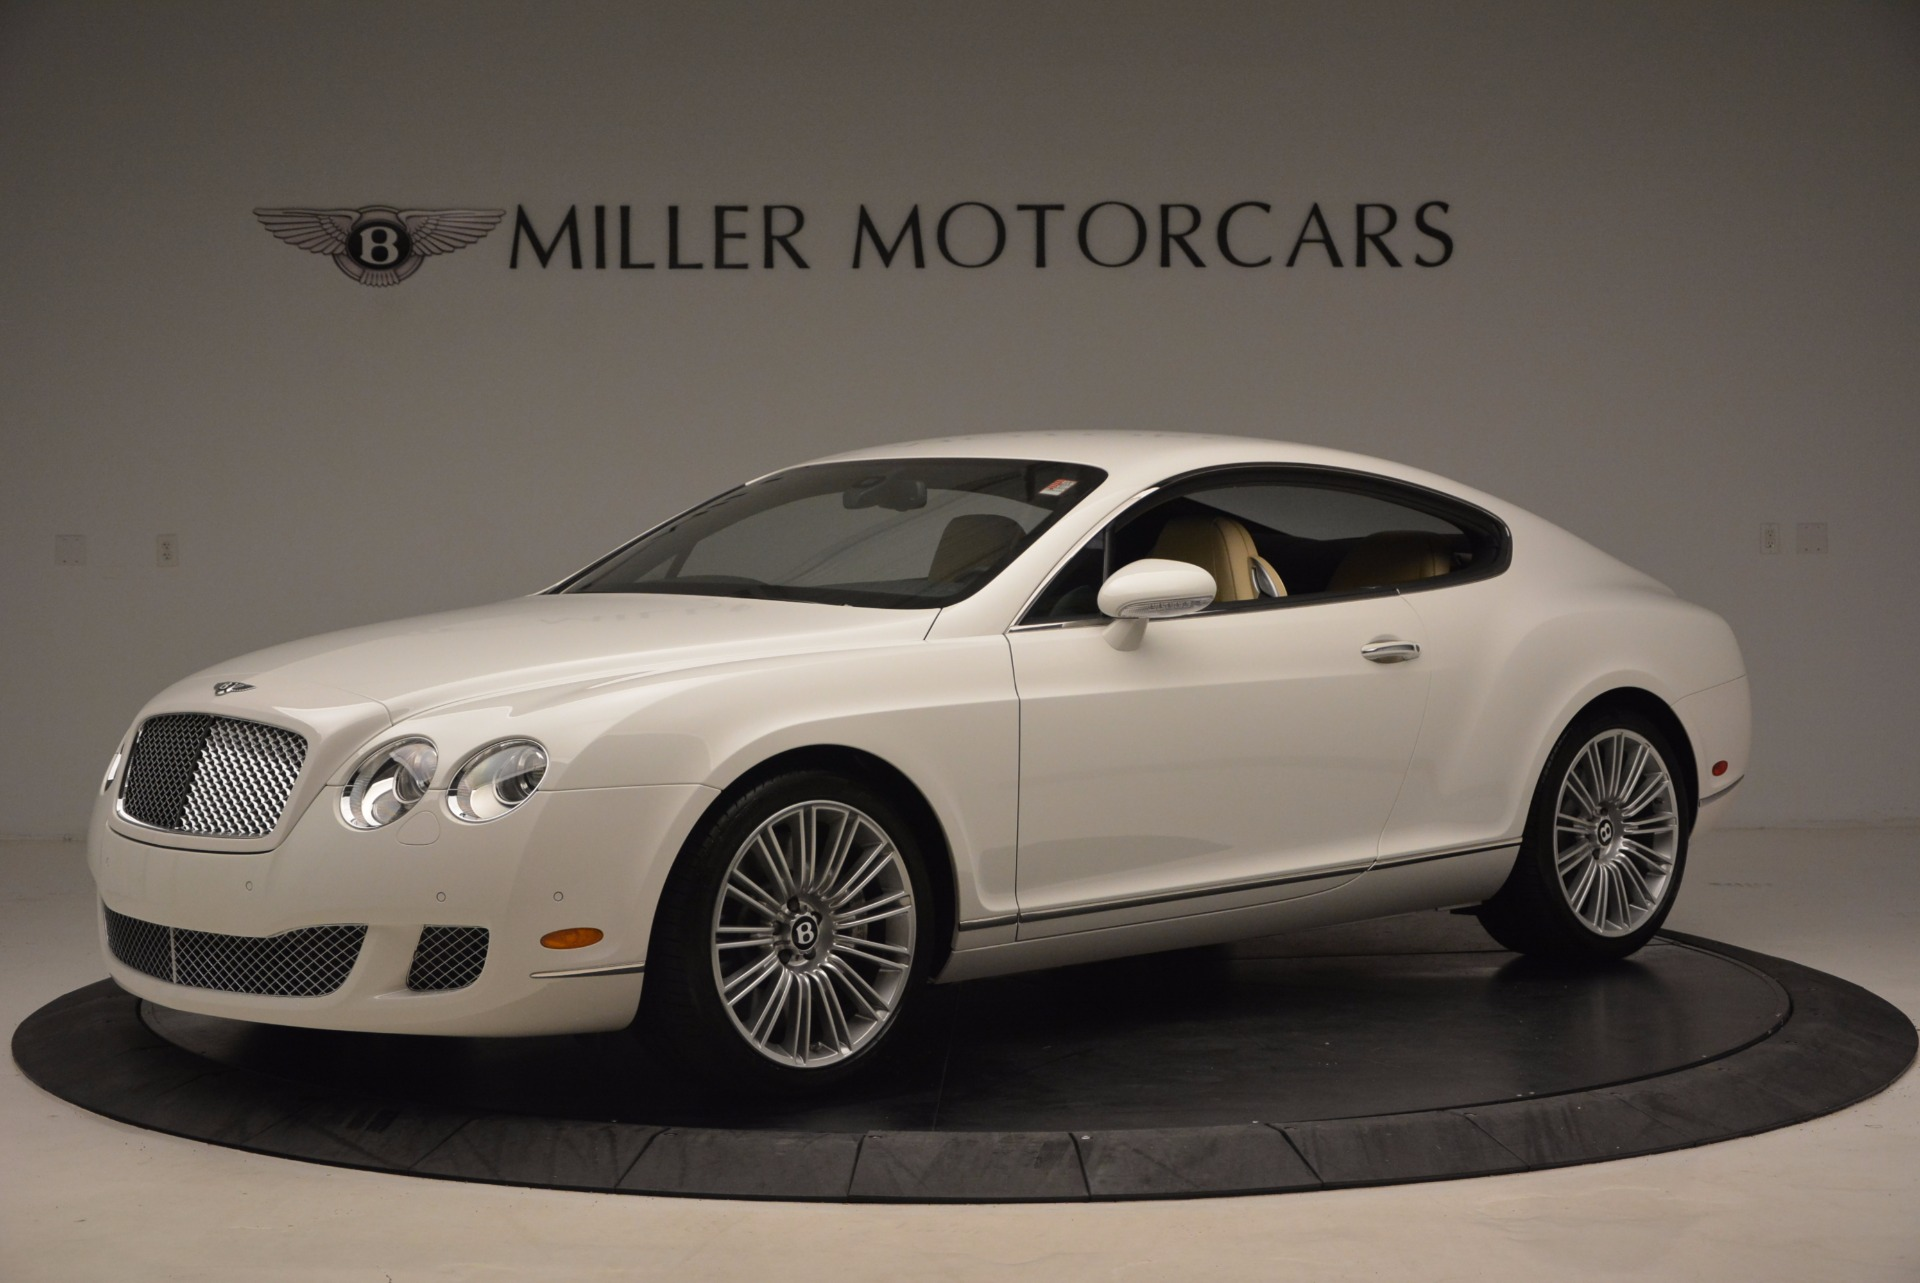 Used 2008 Bentley Continental GT Speed For Sale In Westport, CT 1552_p2